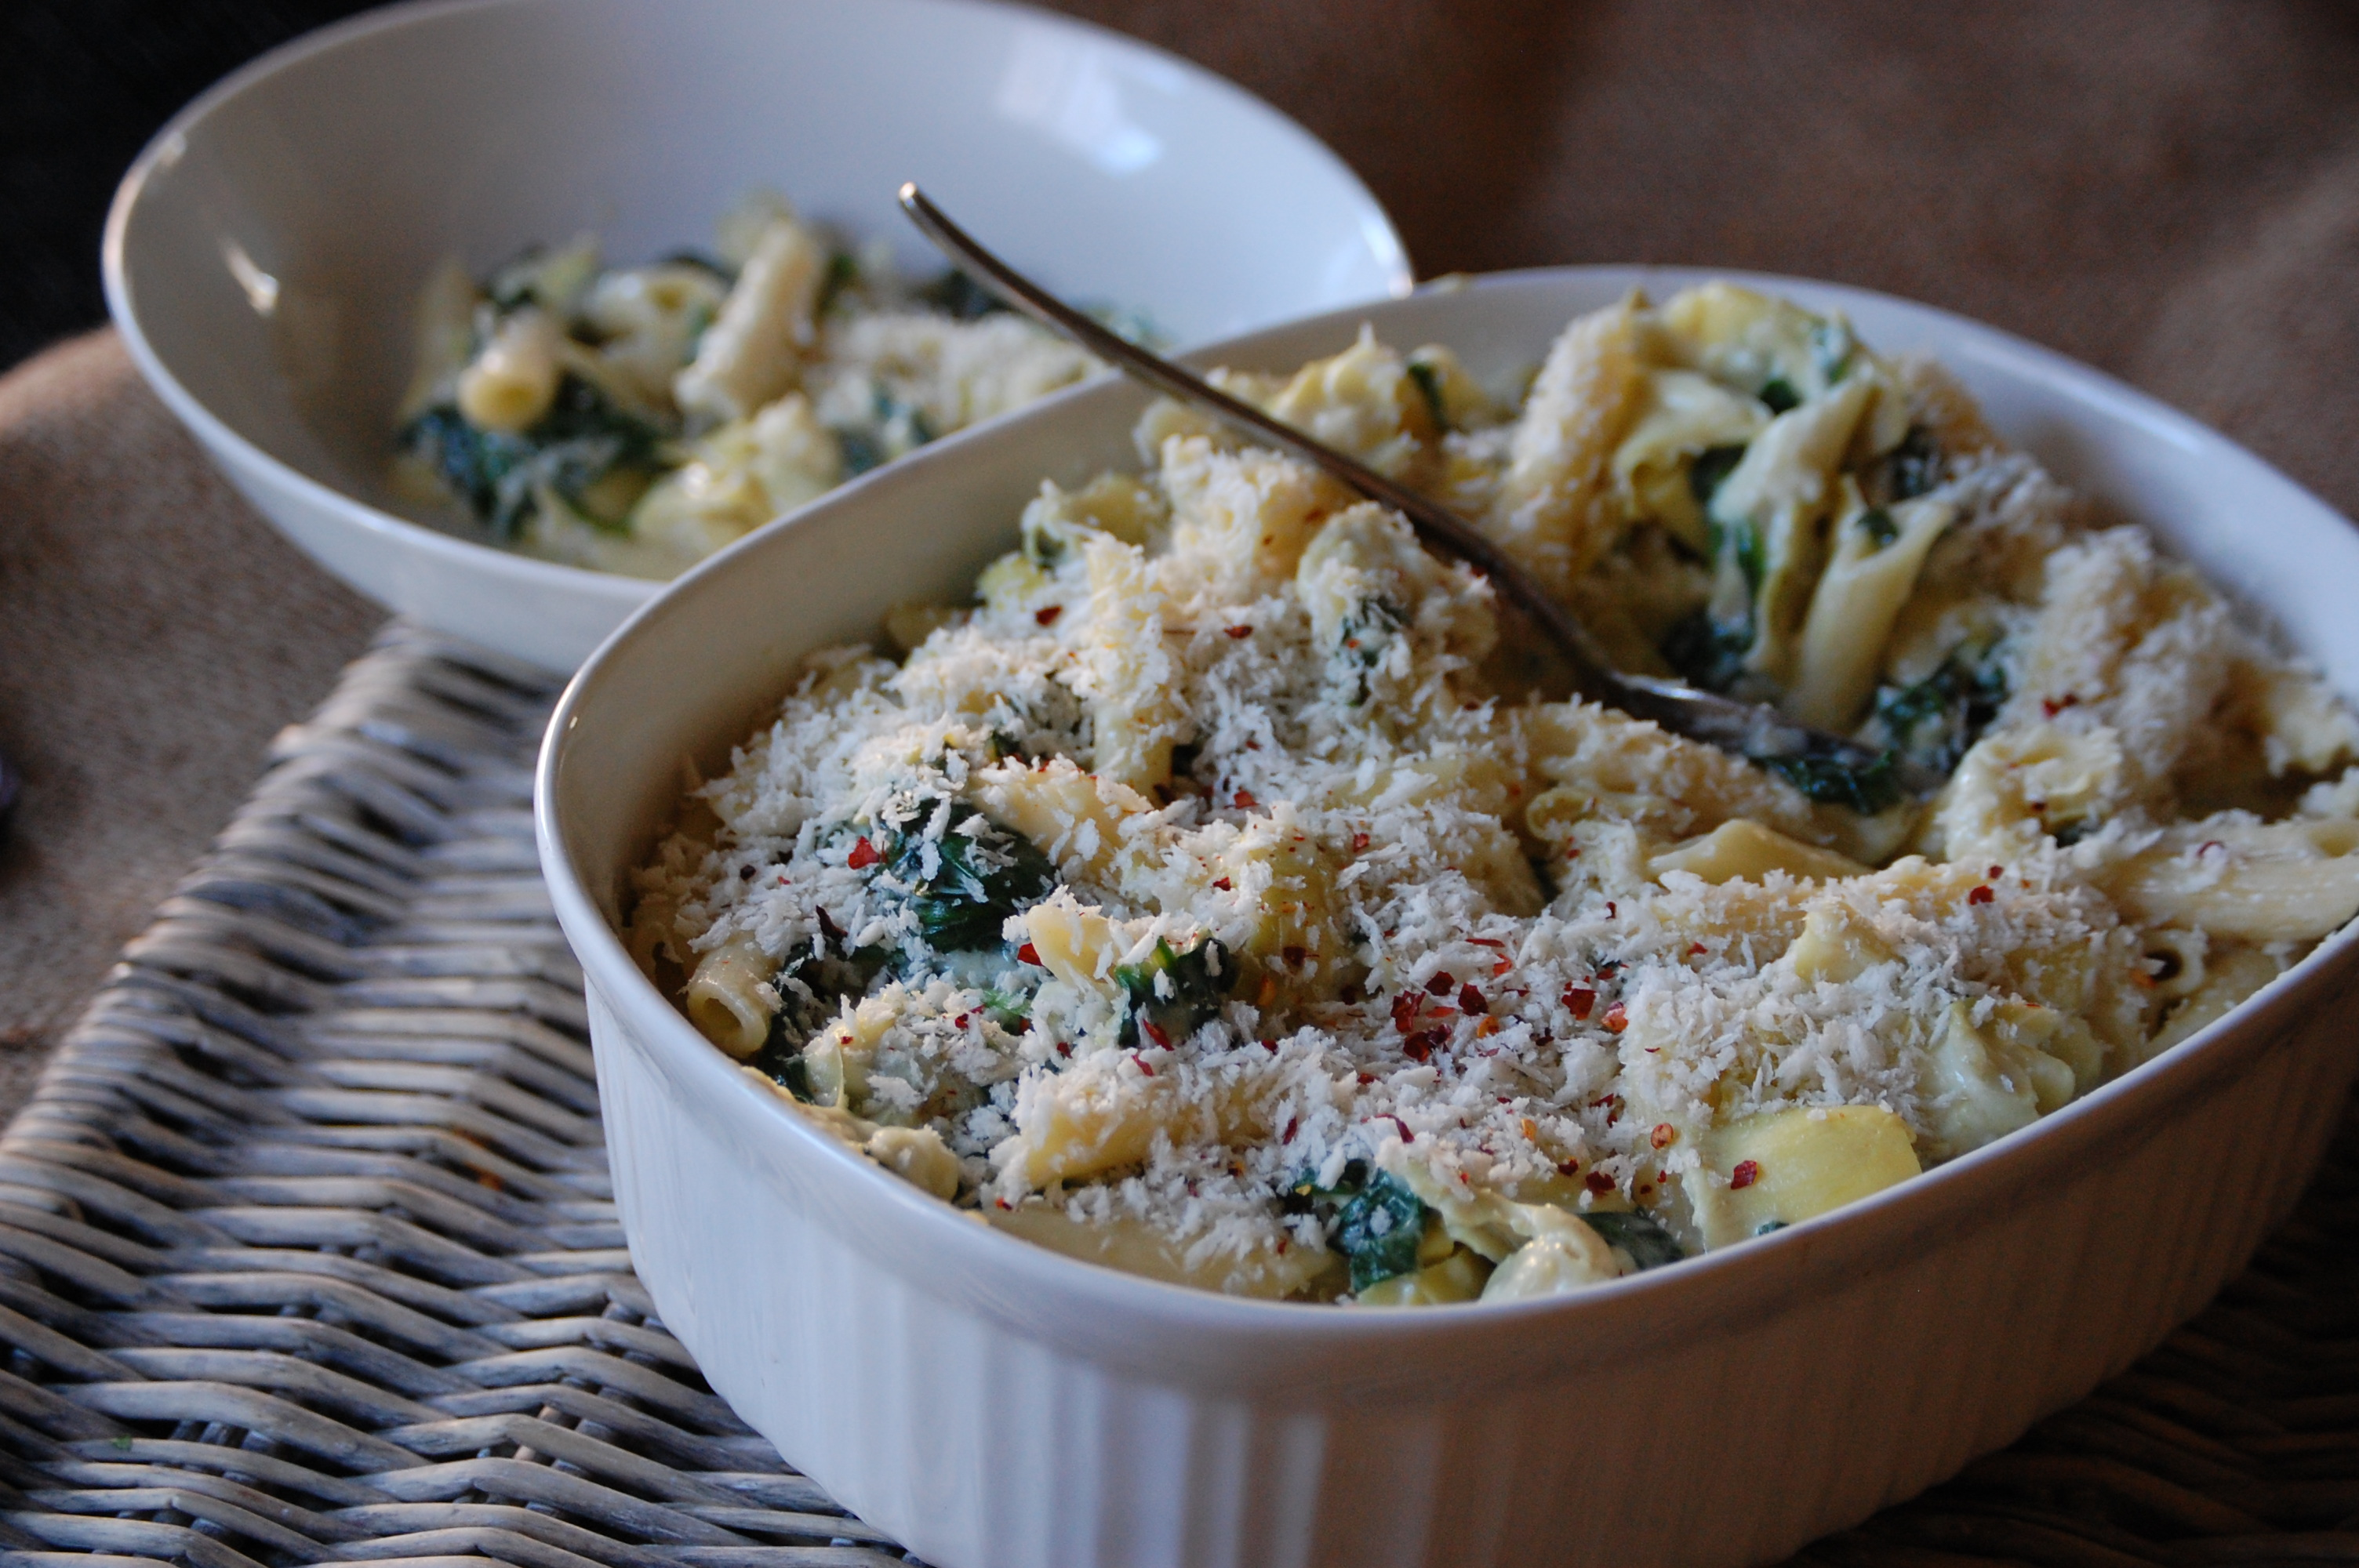 Spinach ARtichoke Pasta with Panko Breadcrumbs